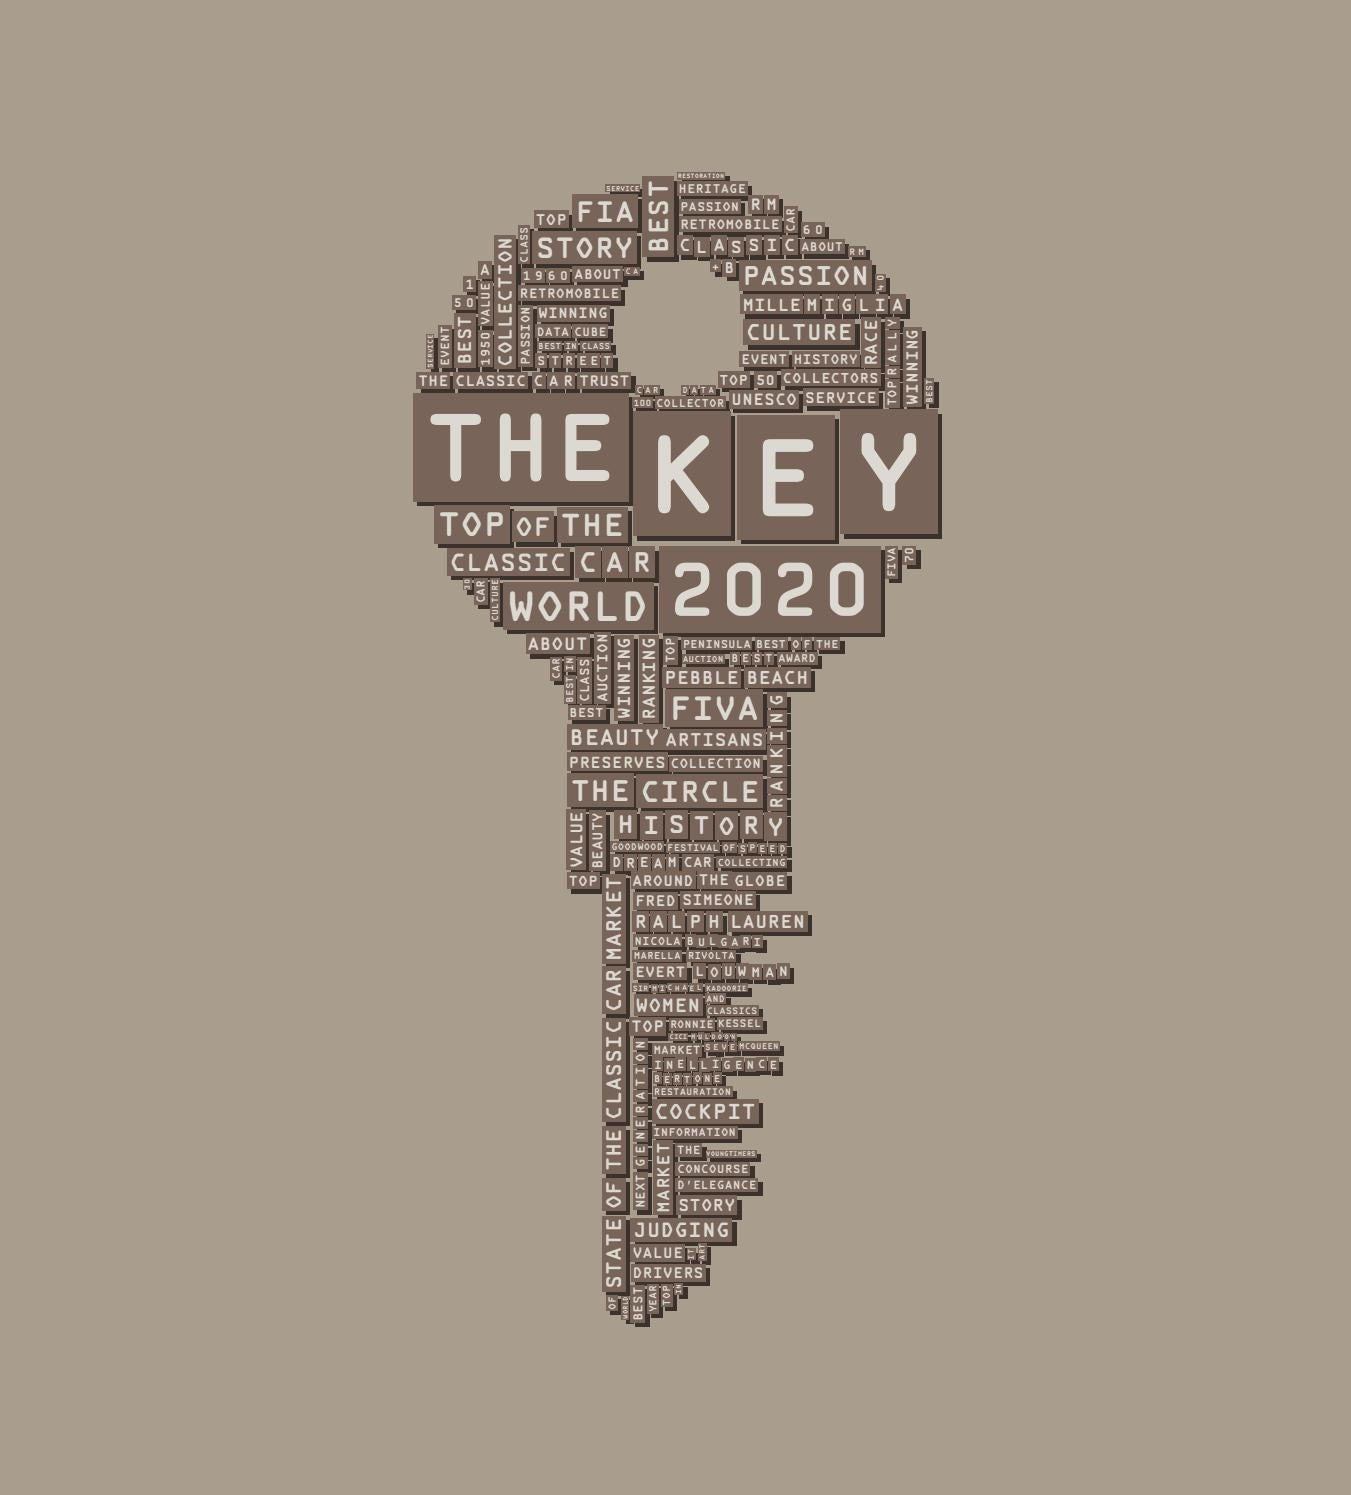 The Key 2020 By The Classic Car Trust Issuu